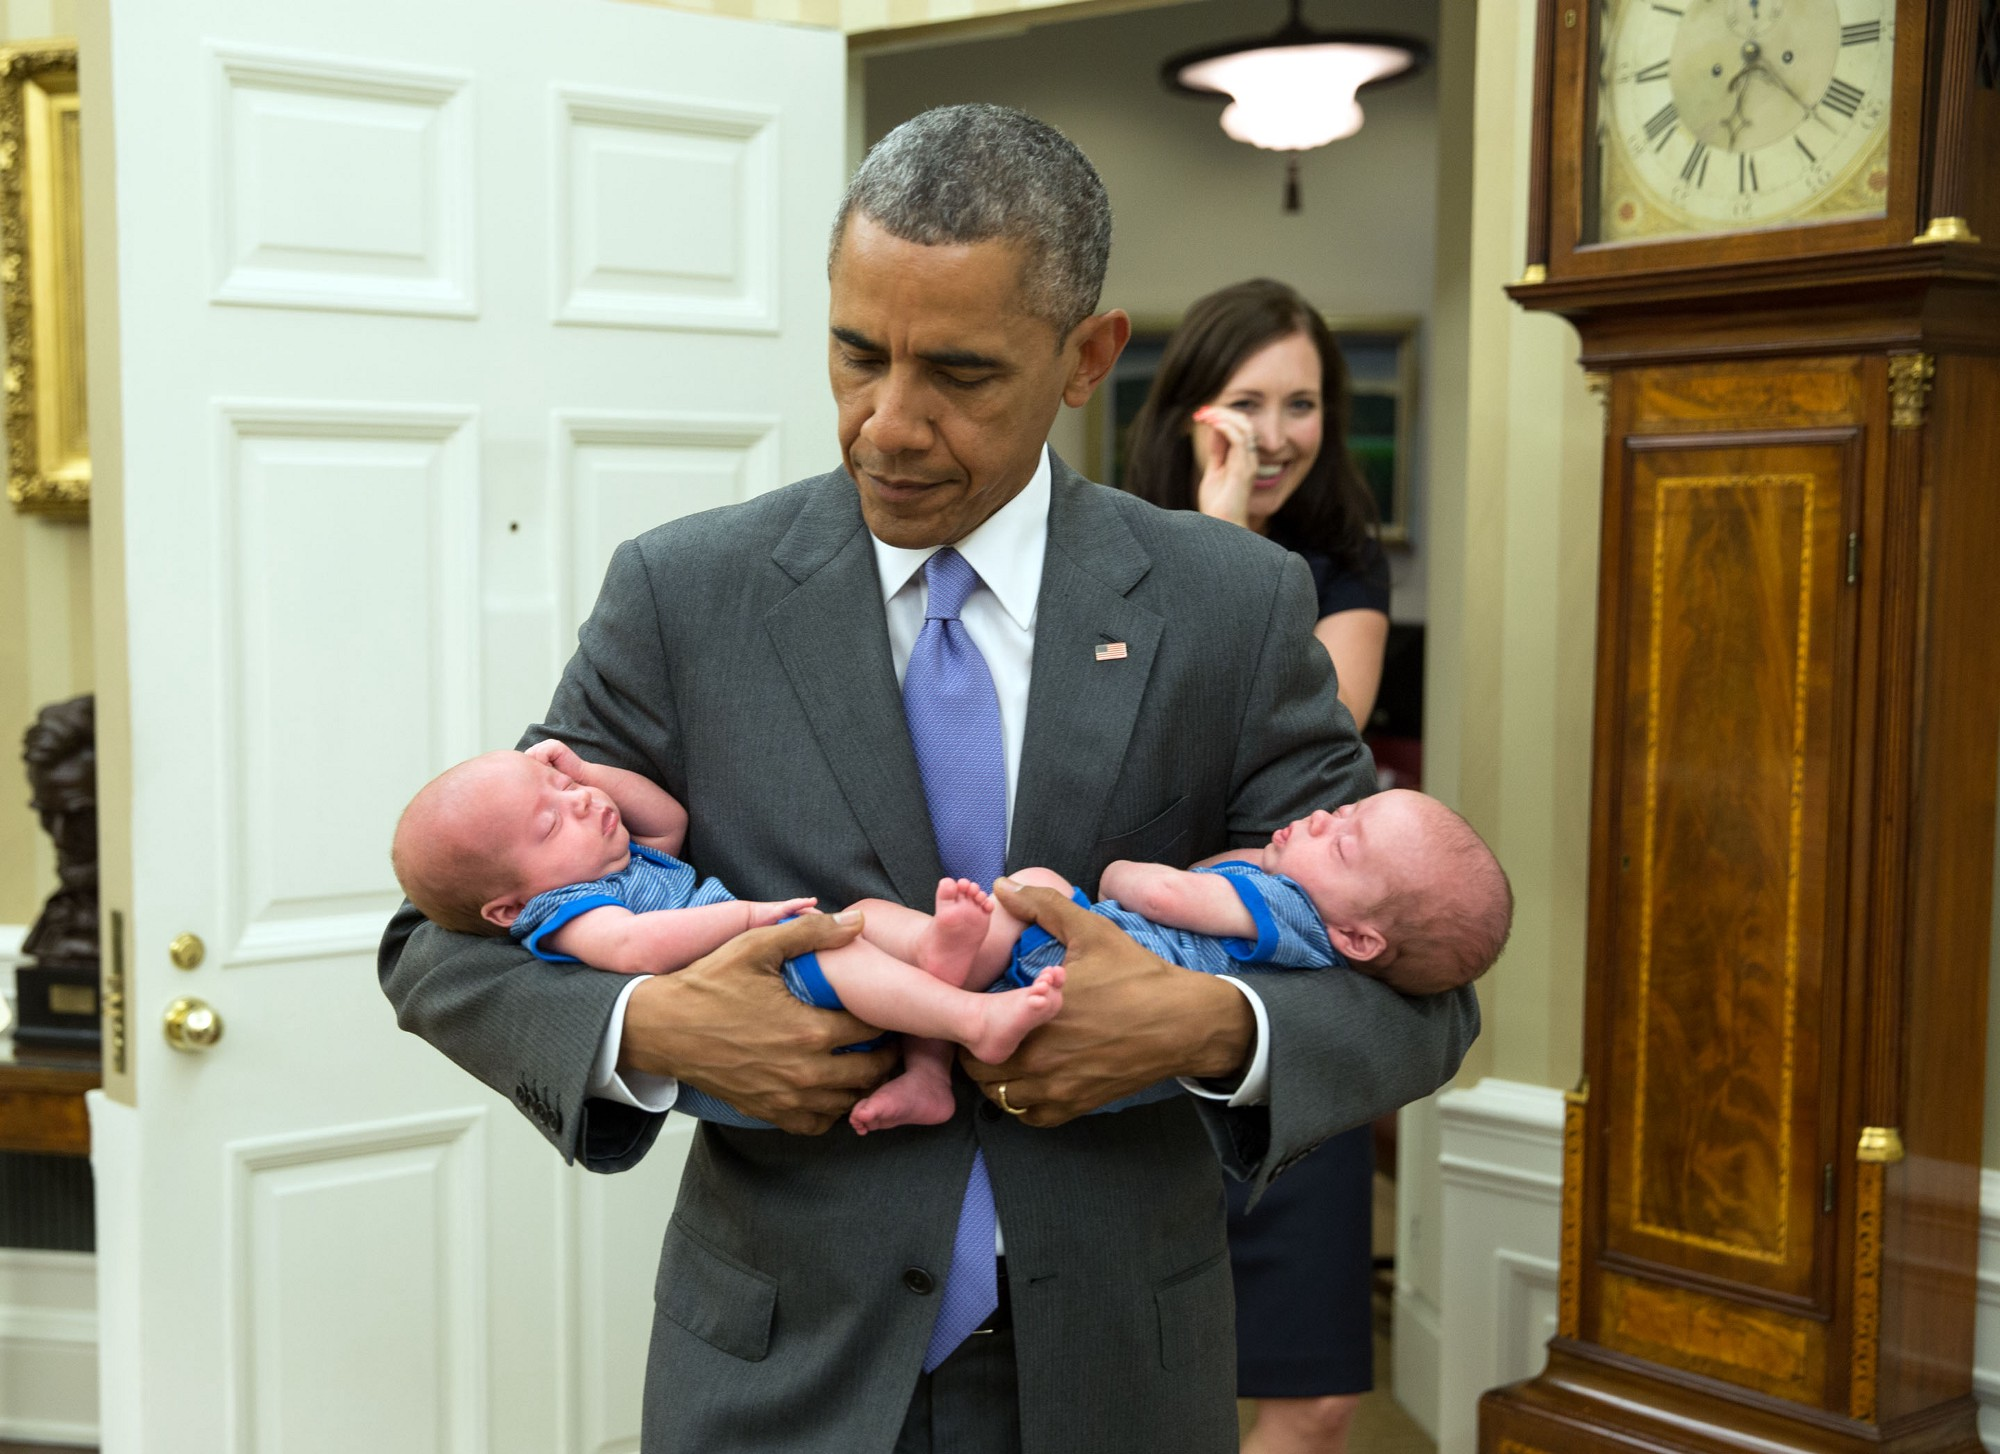 "June 17, 2015 ""The President carries the twin boys of Katie Beirne Fallon, Director of Legislative Affairs, into the Oval Office just a few months after they were born."" (Official White House Photo by Pete Souza)"